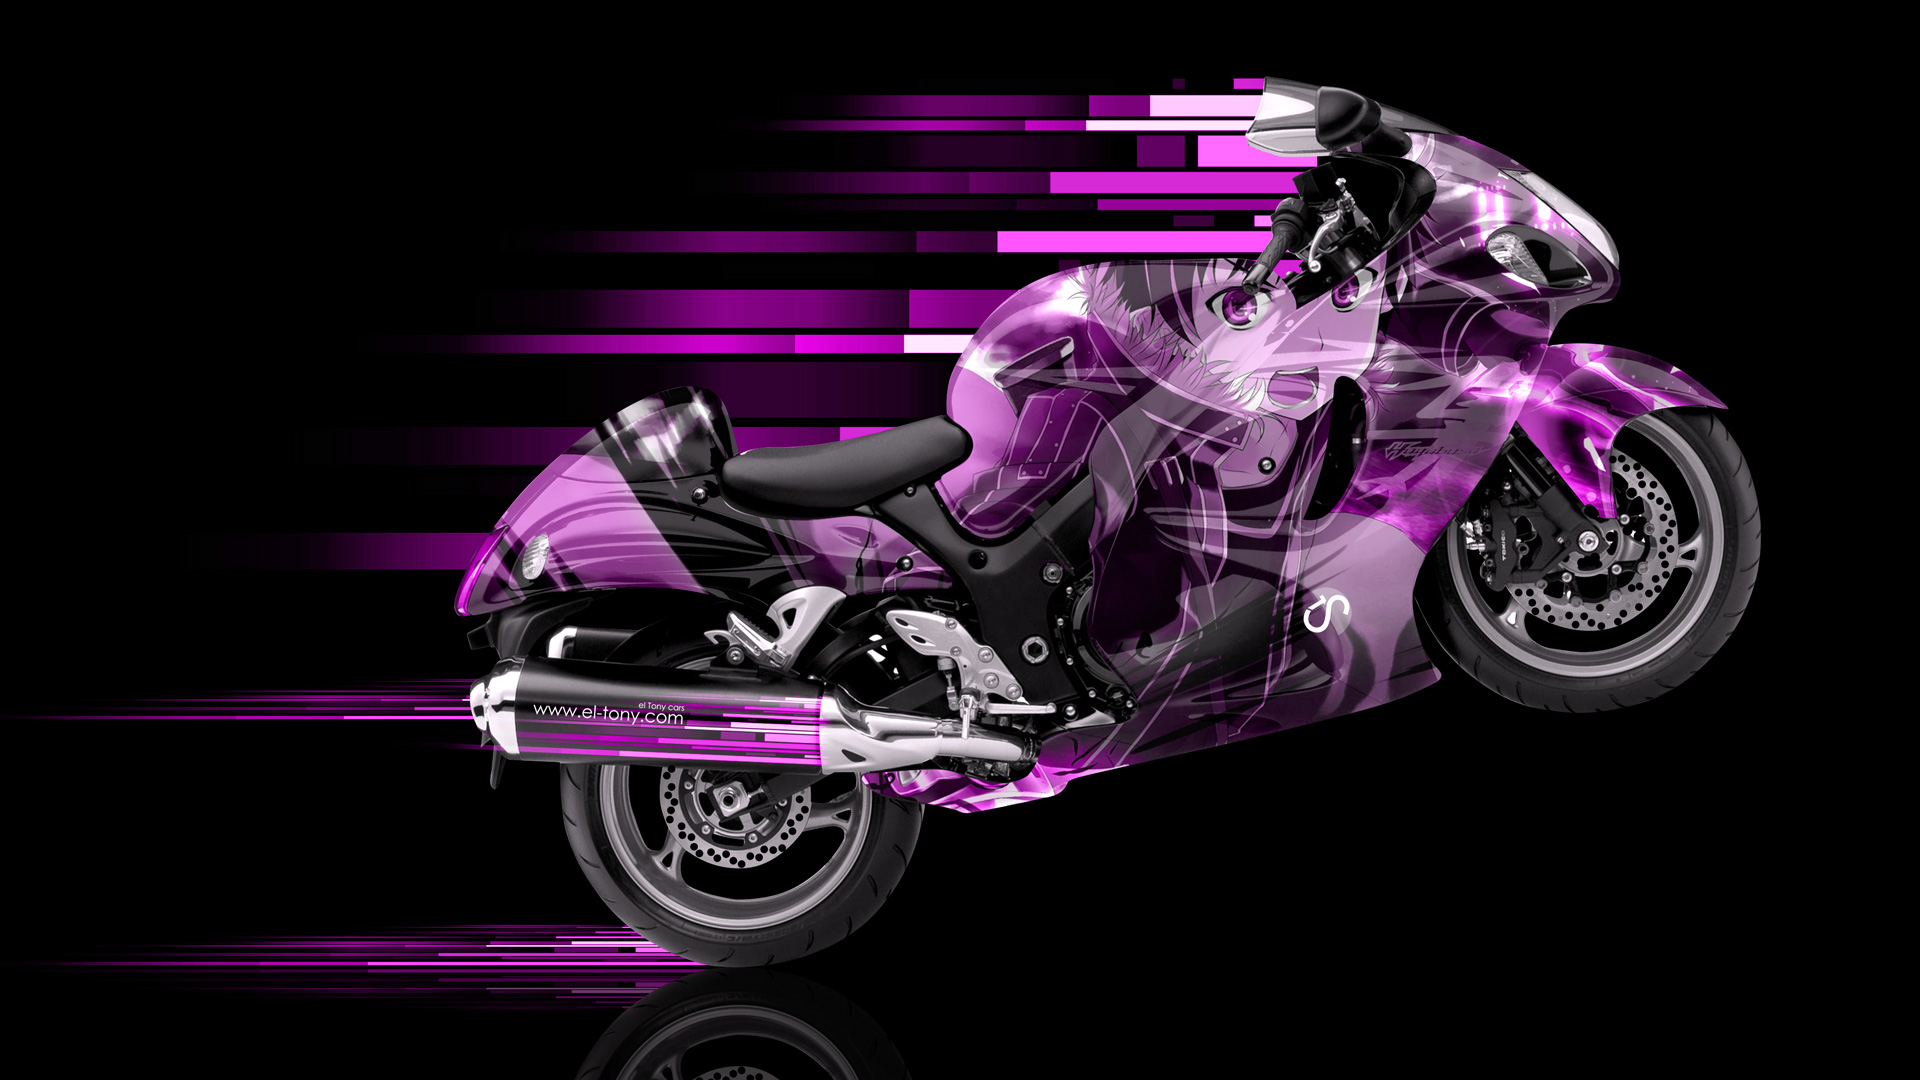 Moto Suzuki Hayabusa Side Anime Aerography Abstract Bike Pink Colors Hd Wallpapers Design By Tony Kokhan Www El Tony Com